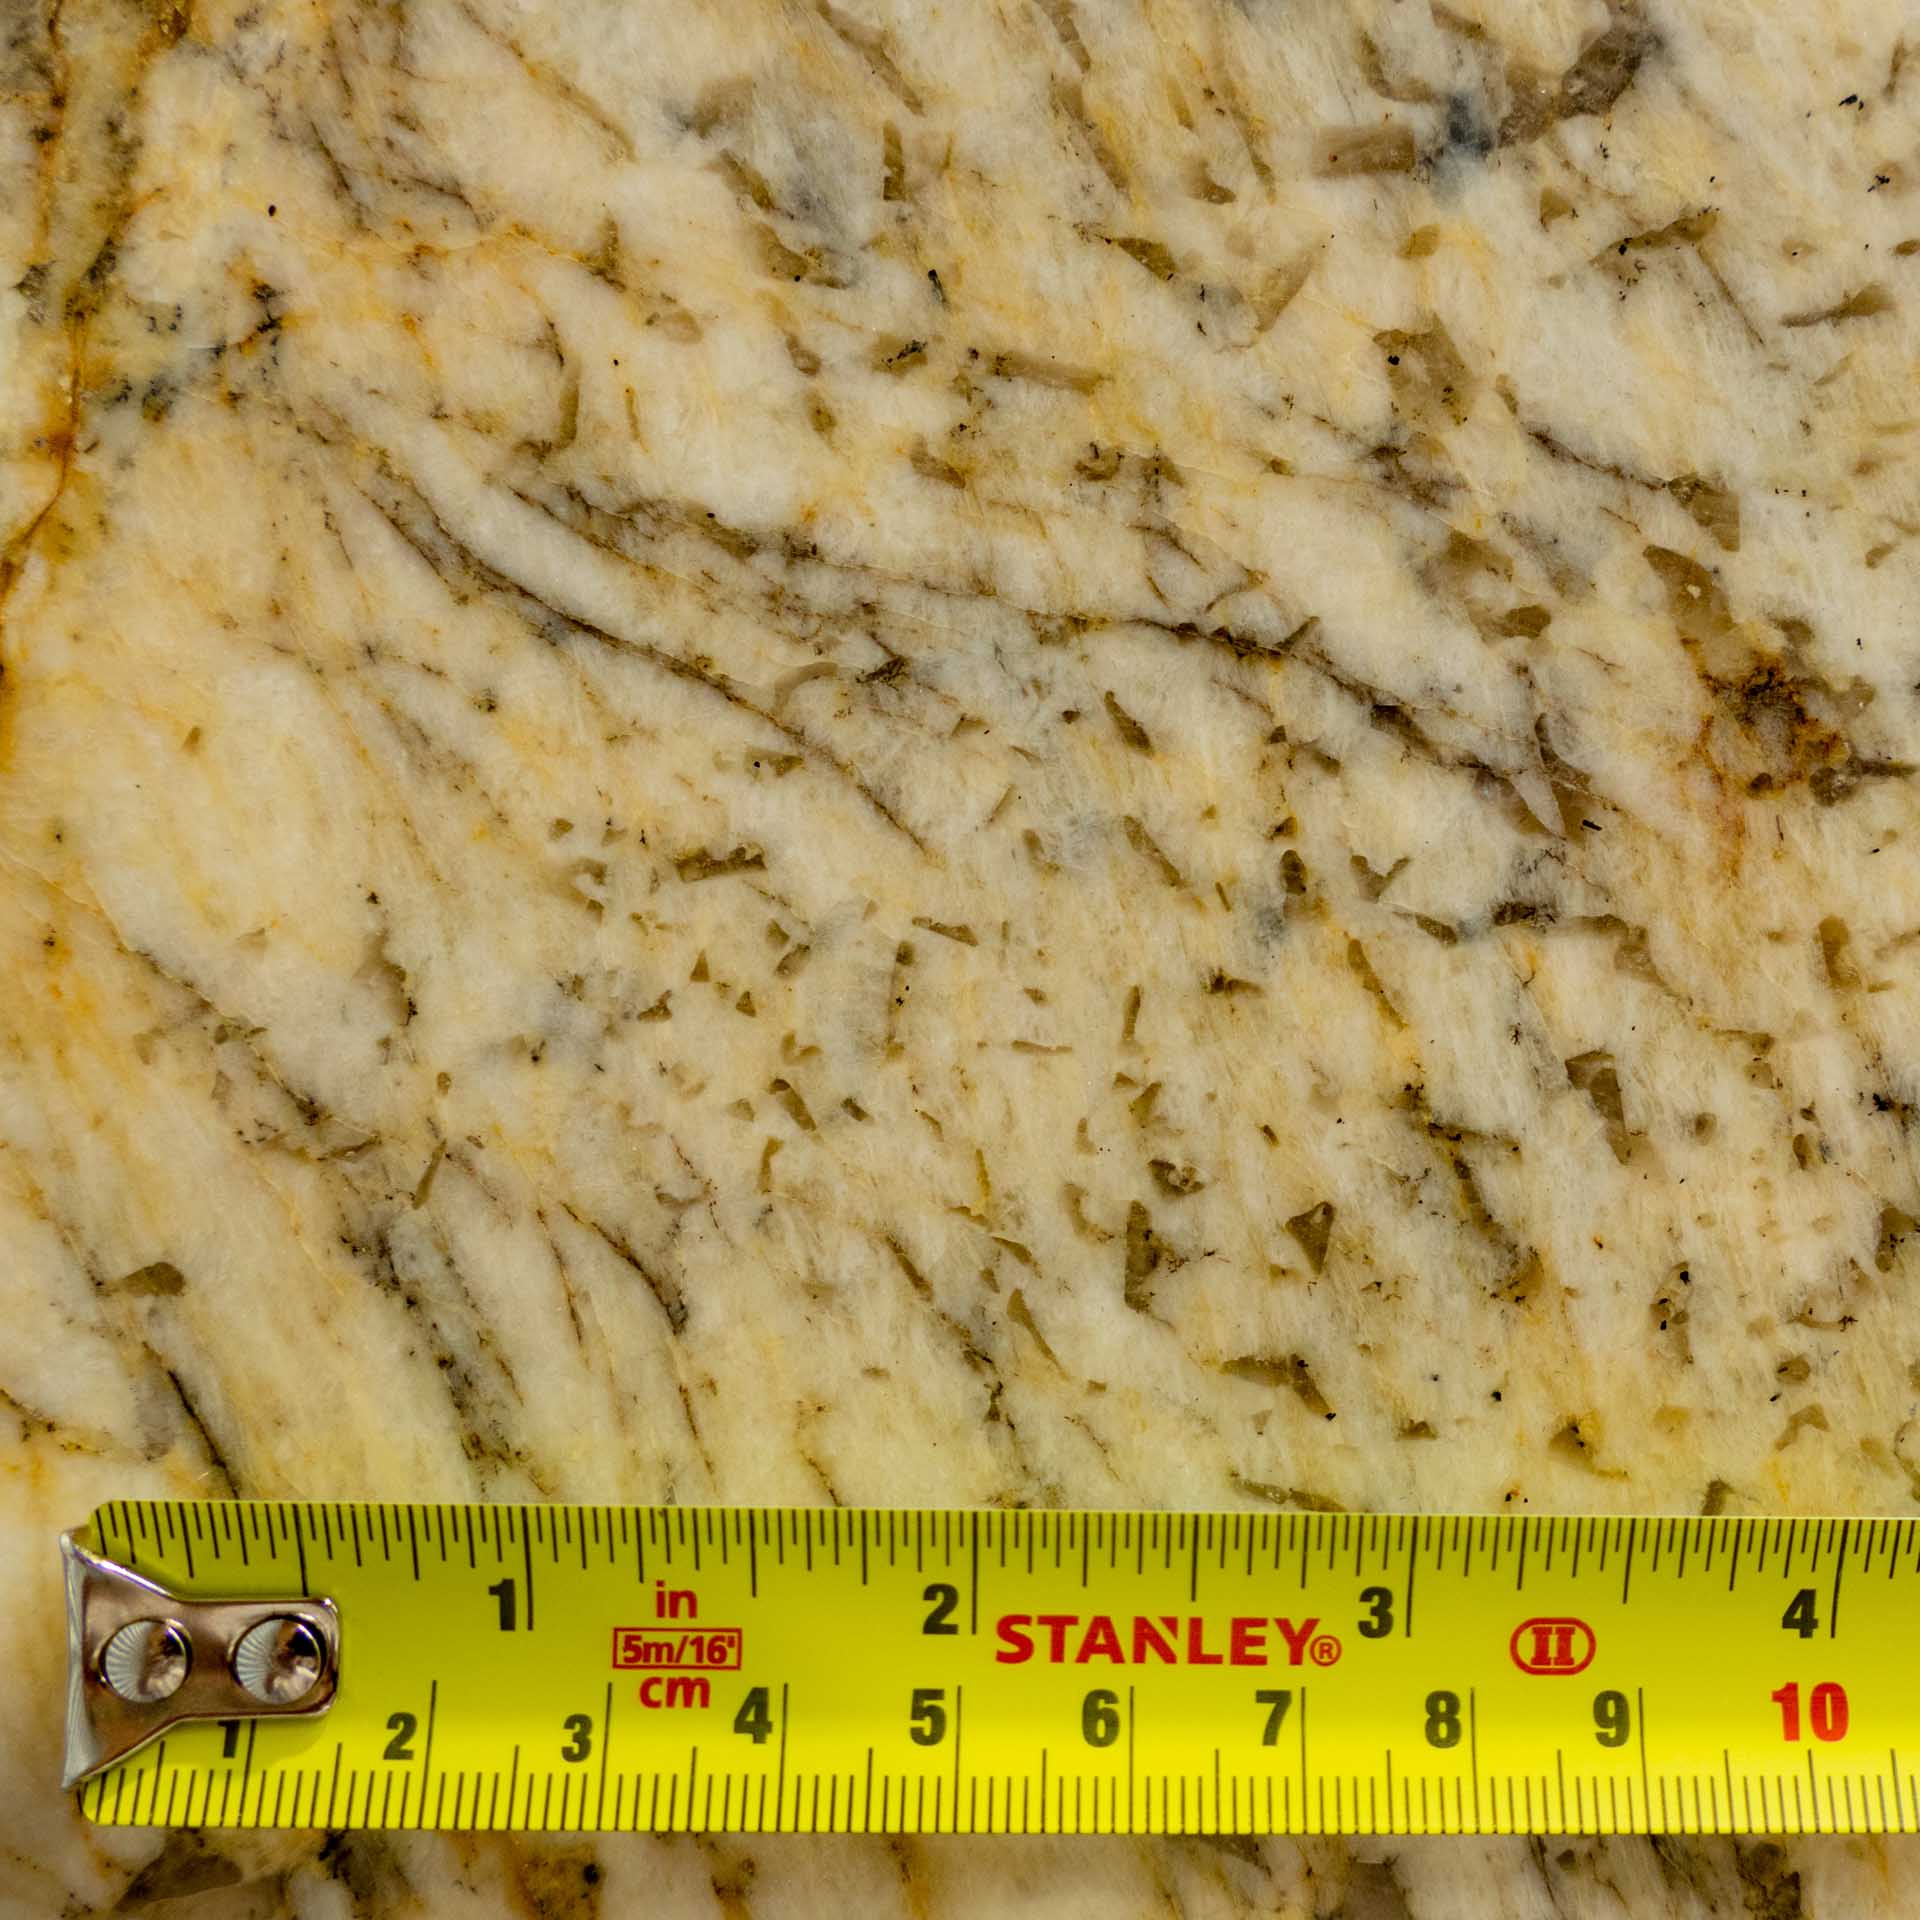 champagne-gold-granite-le180716-33651-143427a